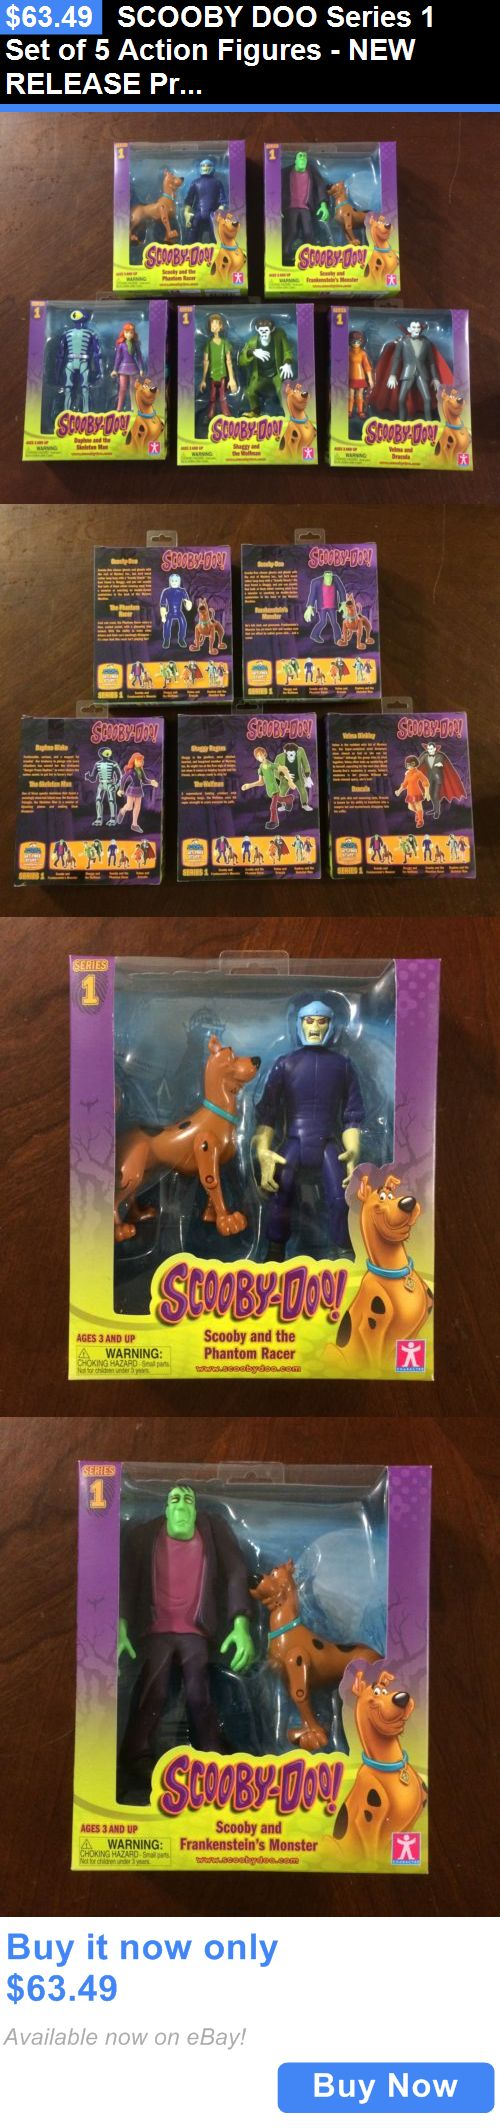 Toys And Games: Scooby Doo Series 1 Set Of 5 Action Figures - New Release Priority Shipping BUY IT NOW ONLY: $63.49